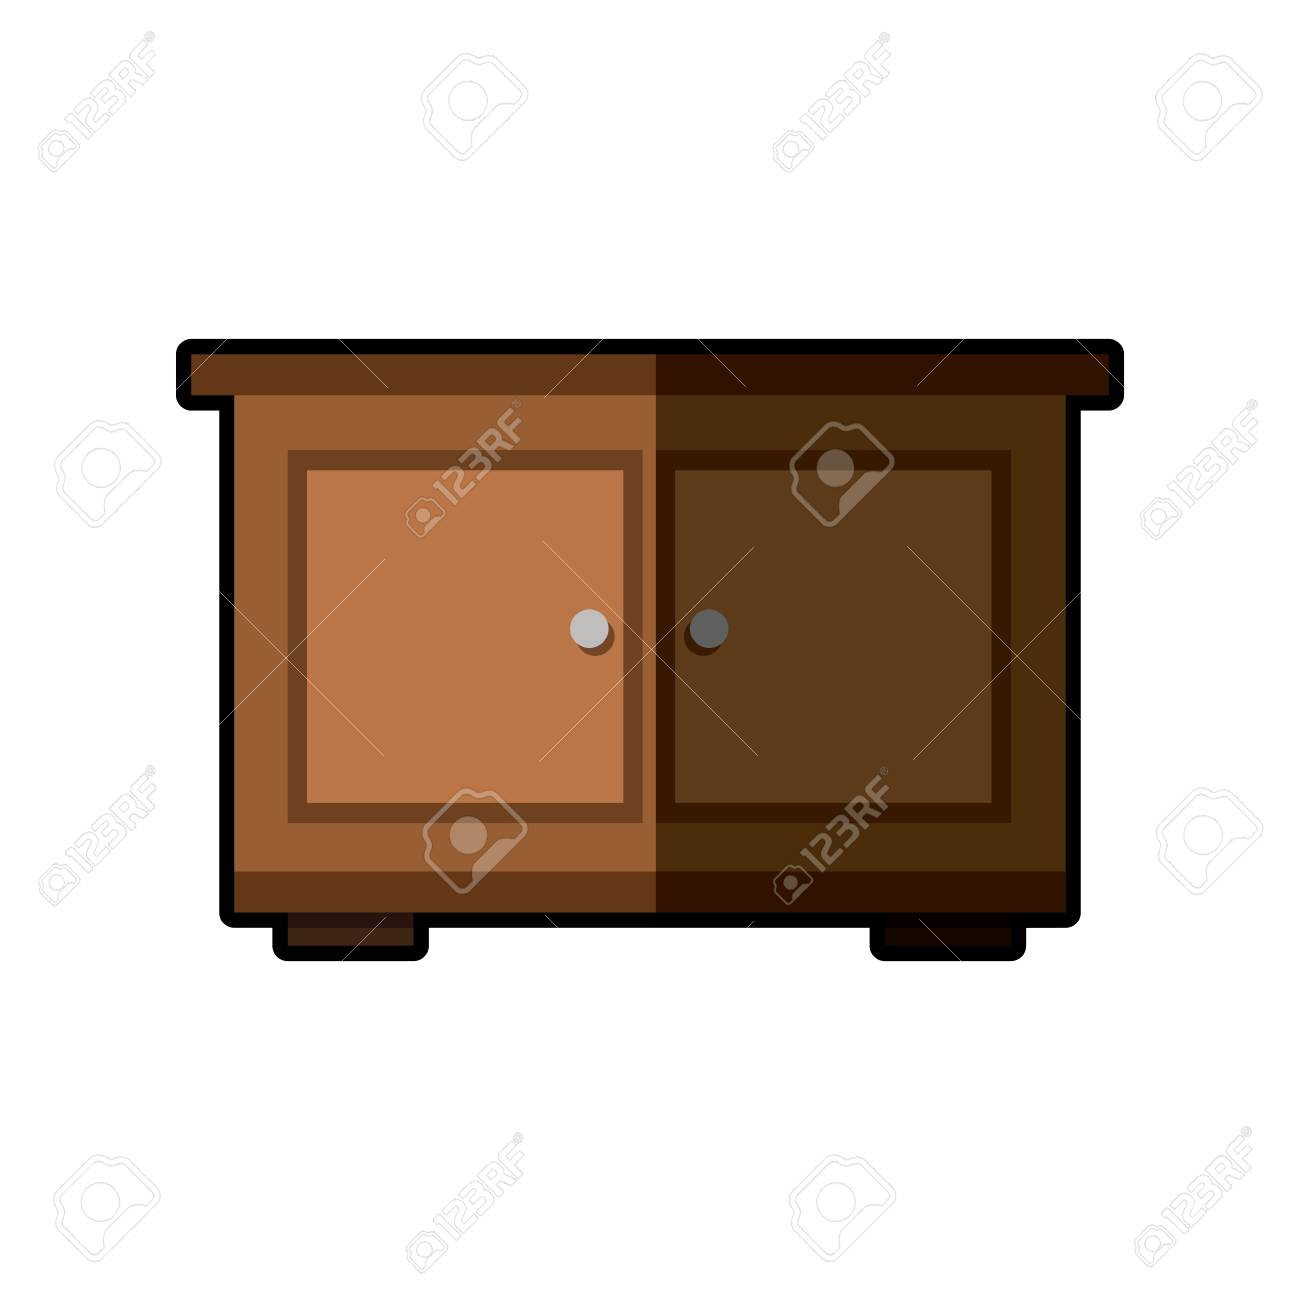 Picture of: Wooden Side Table Furniture Design Vector Illustration Royalty Free Cliparts Vectors And Stock Illustration Image 77032677